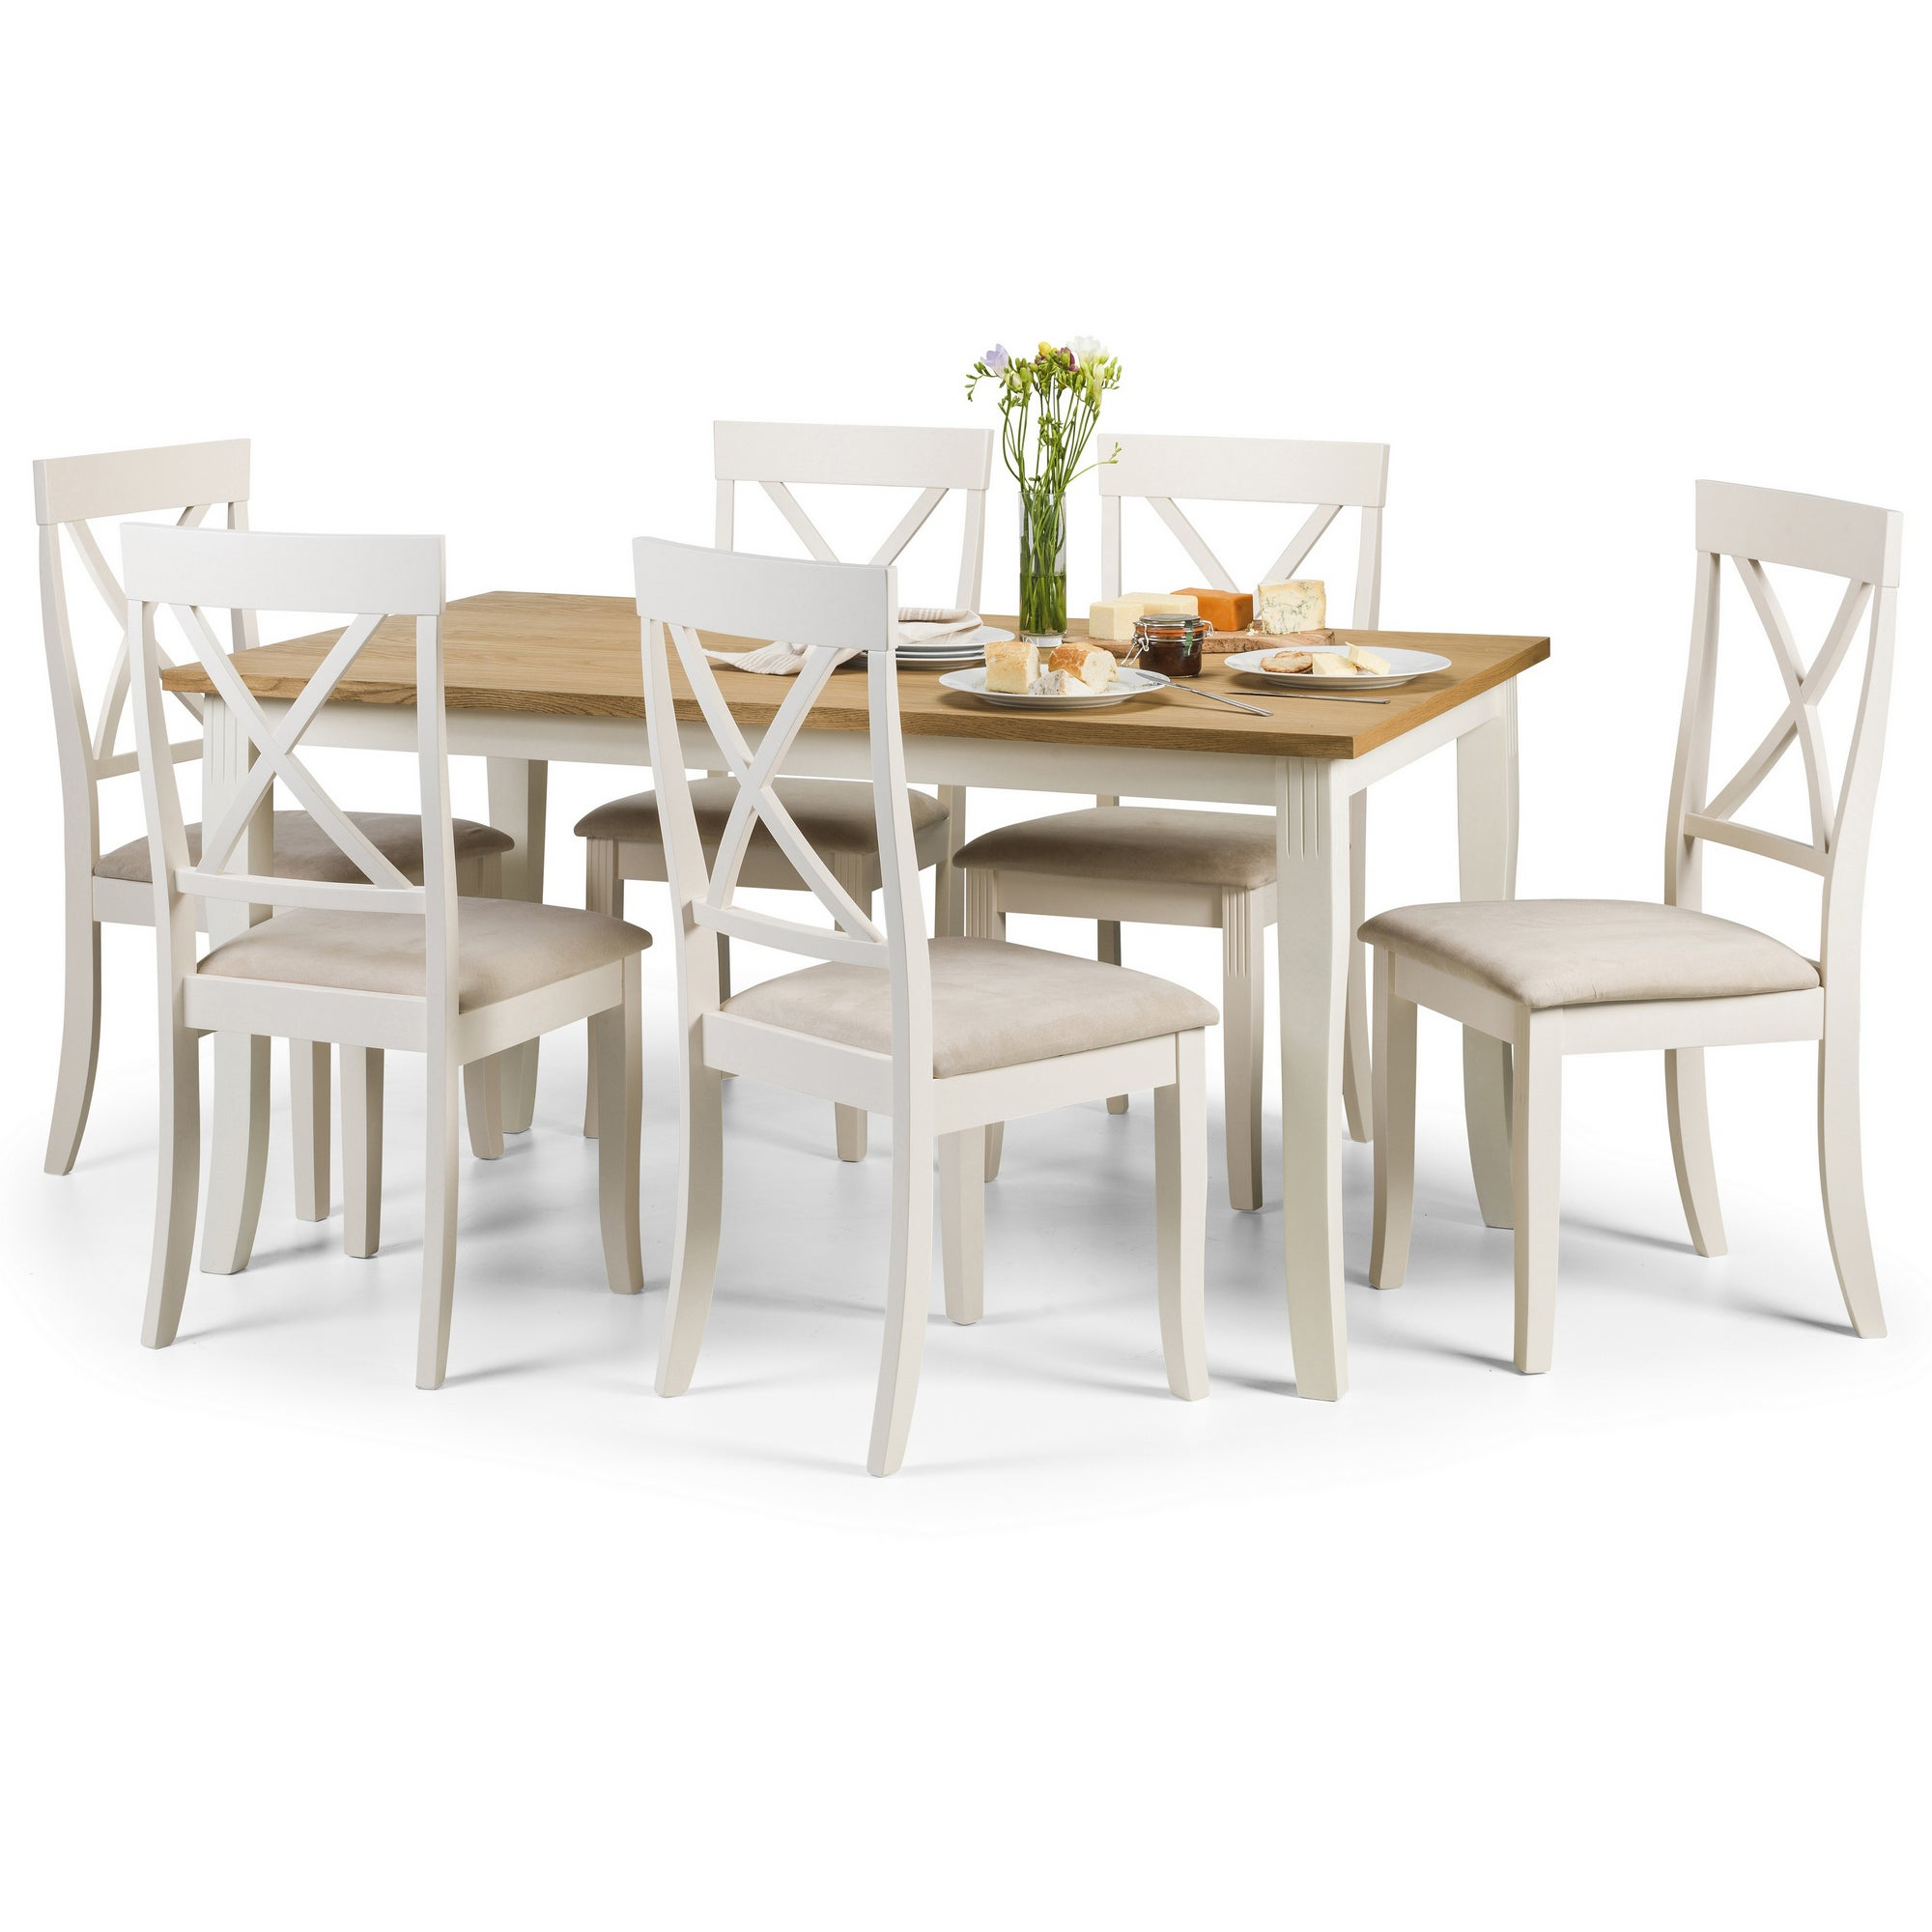 Davenport Dining Table with 6 Chairs Cream and Brown